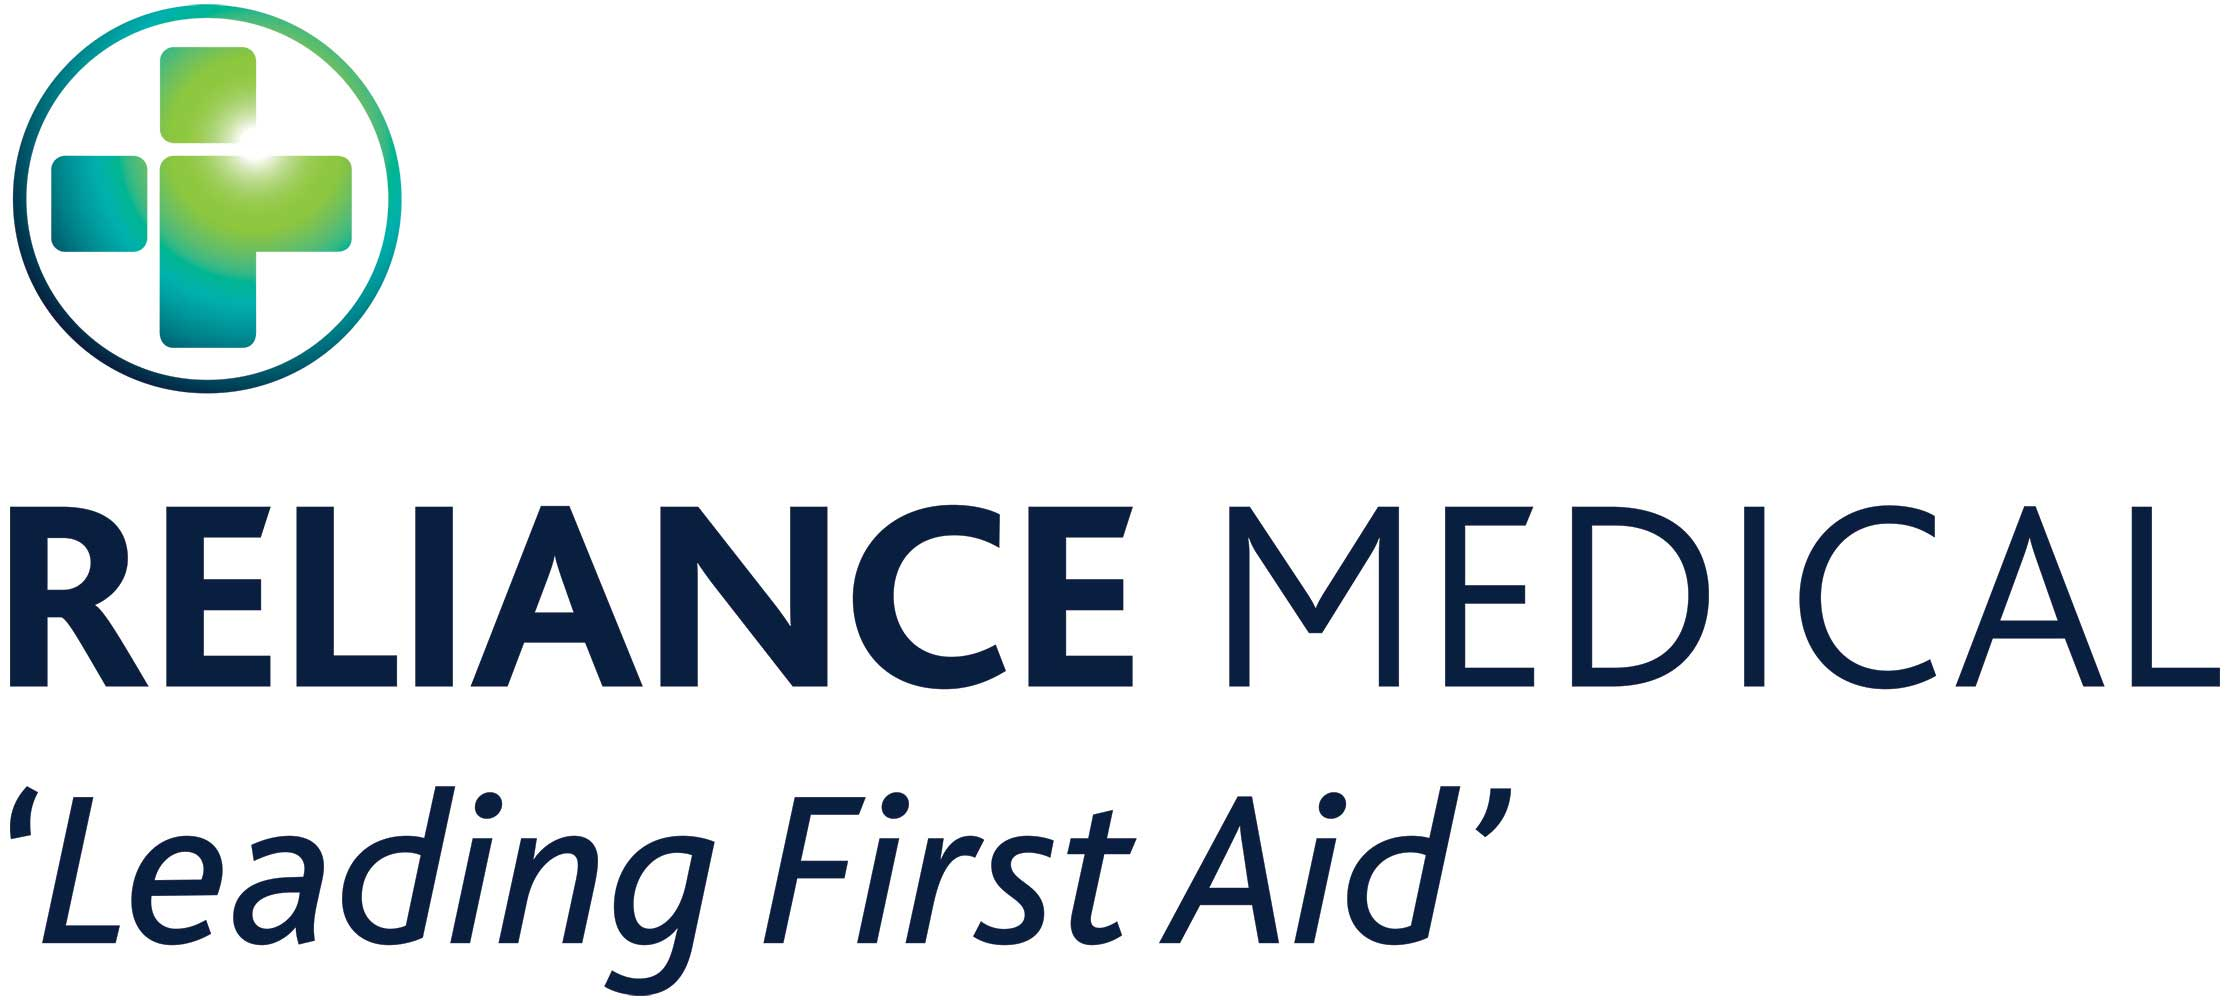 Billedresultat for reliance medical logo